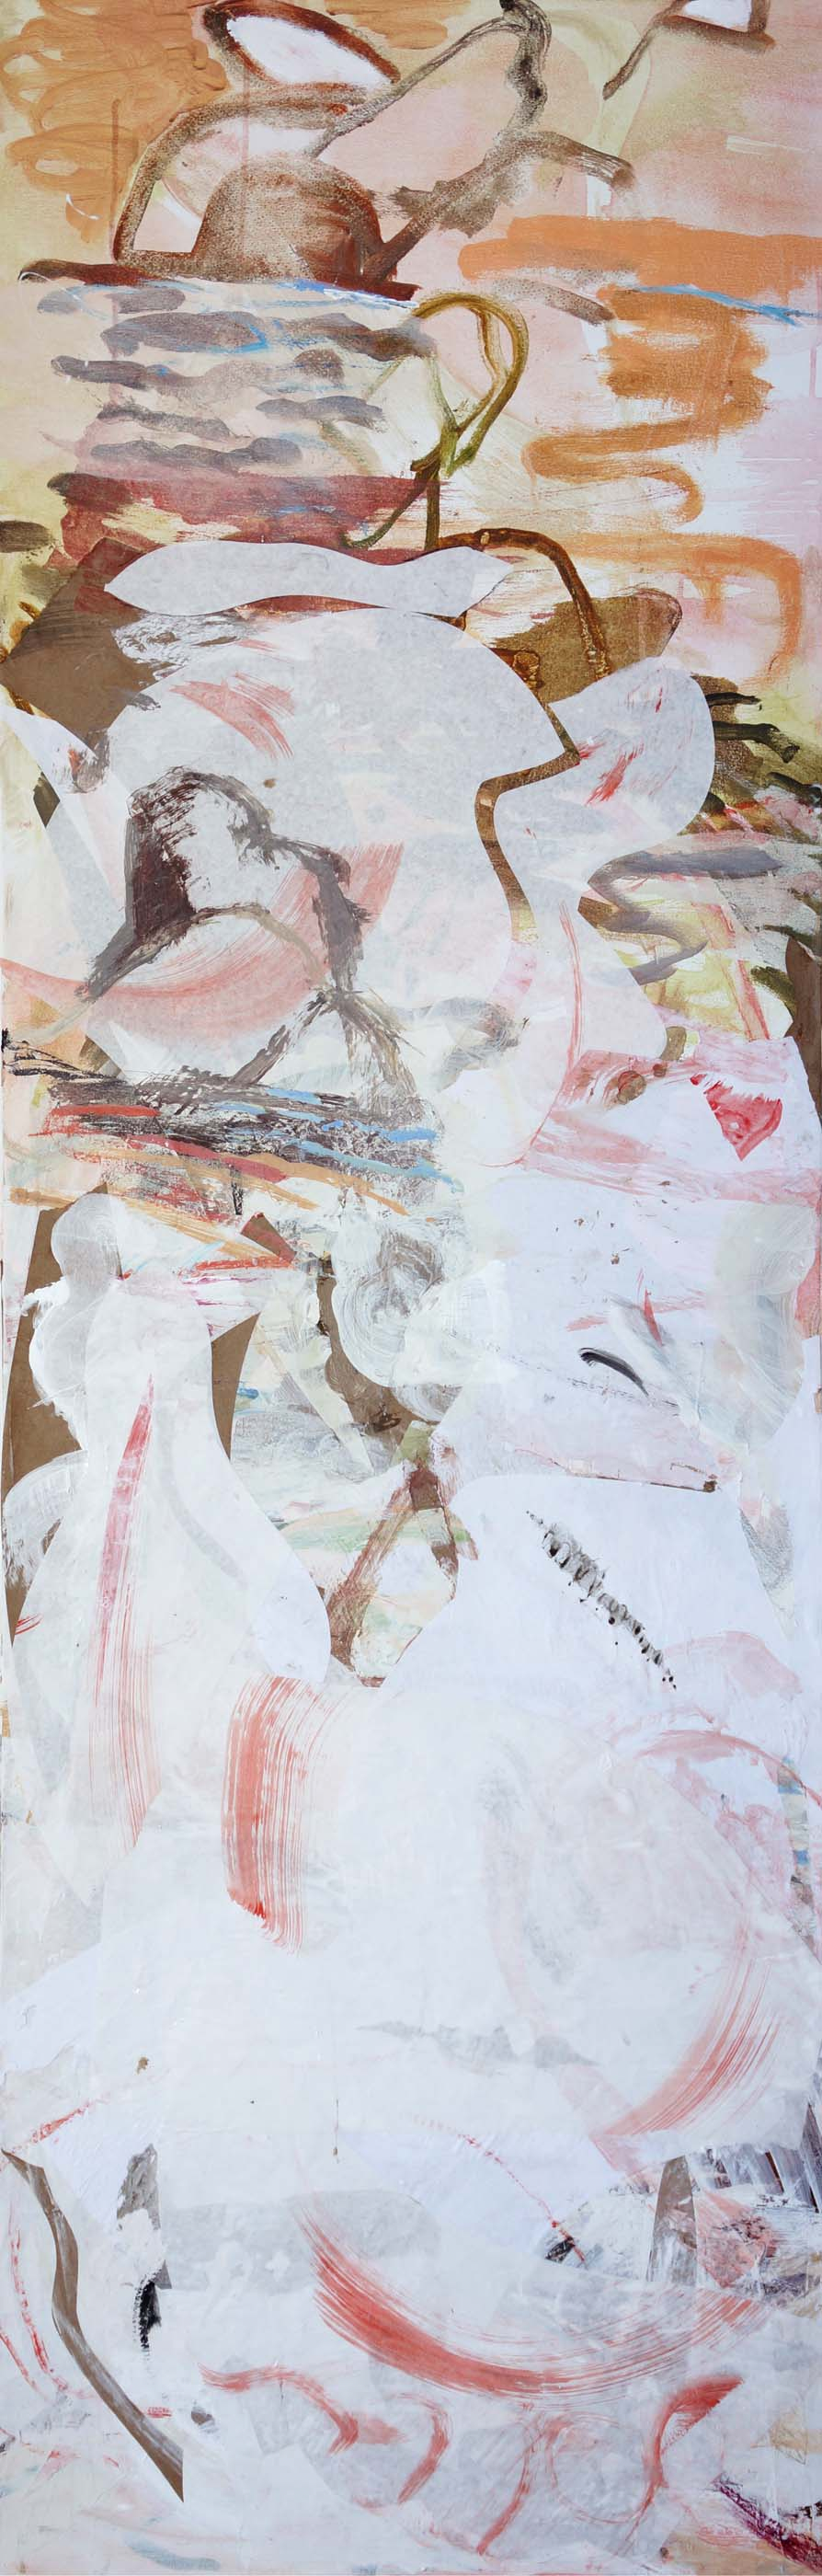 2.23.13  song creek  78x26  acrylic & collaged paper on canva